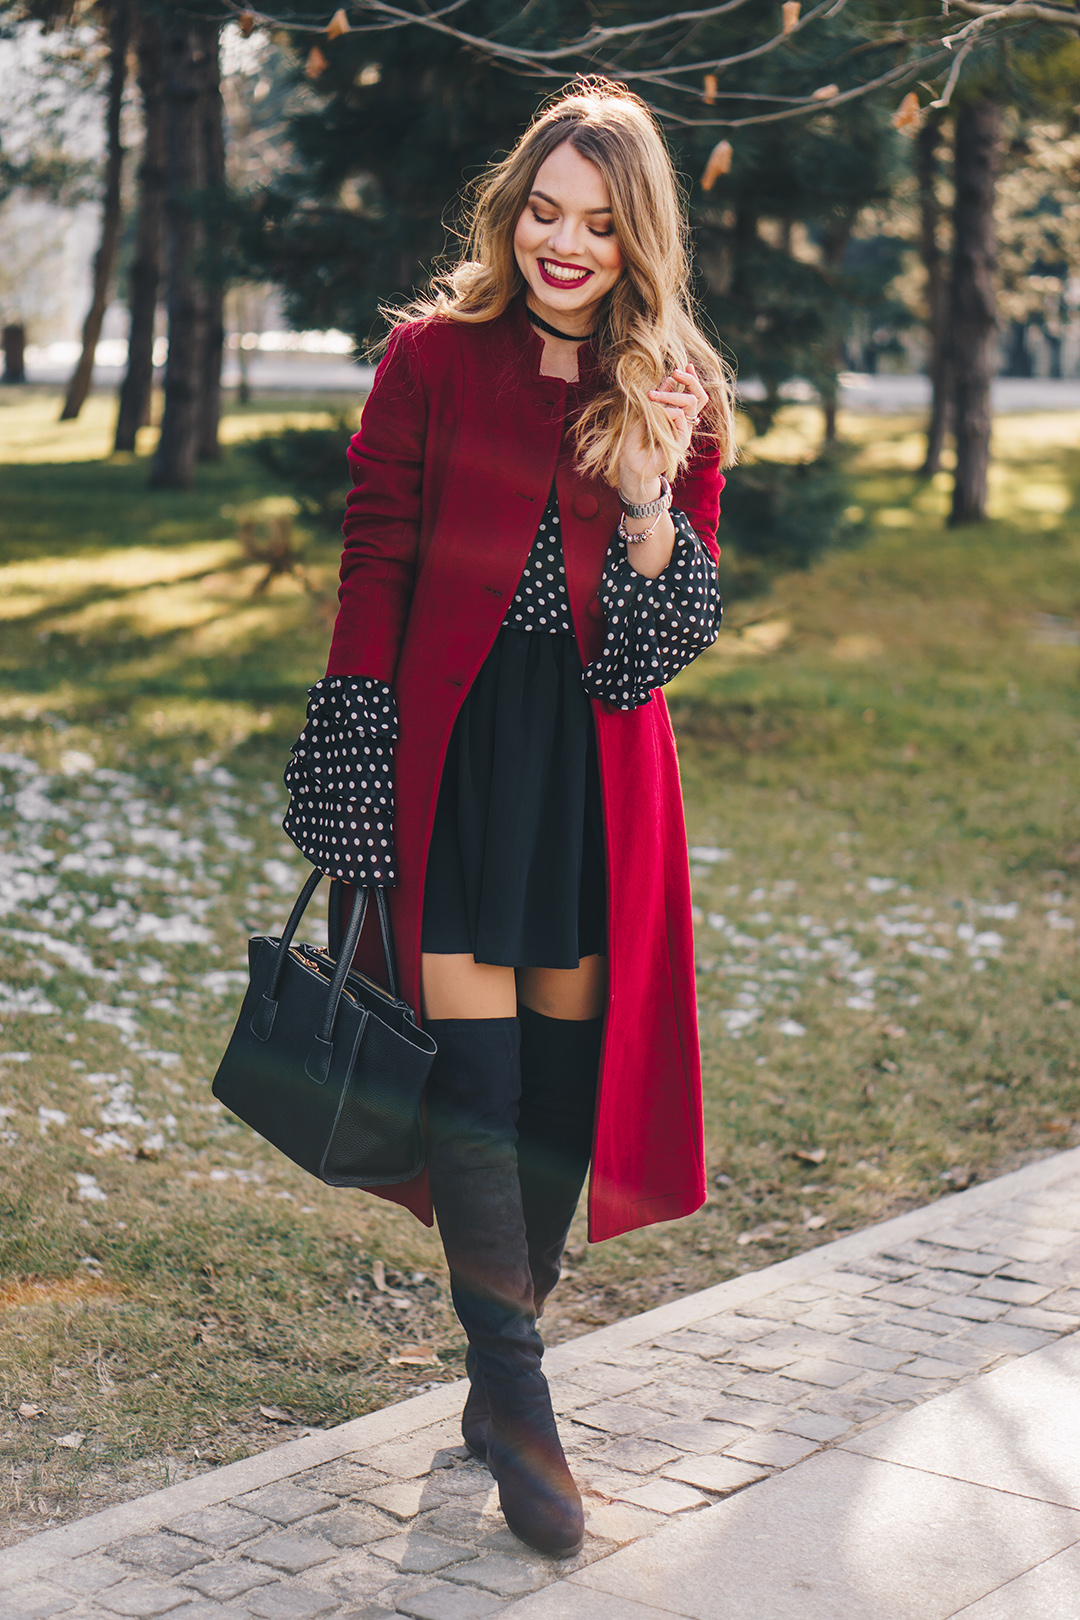 red-wool-coat-polka-dots-bell-sleeves-blouse-winter-outfit-12